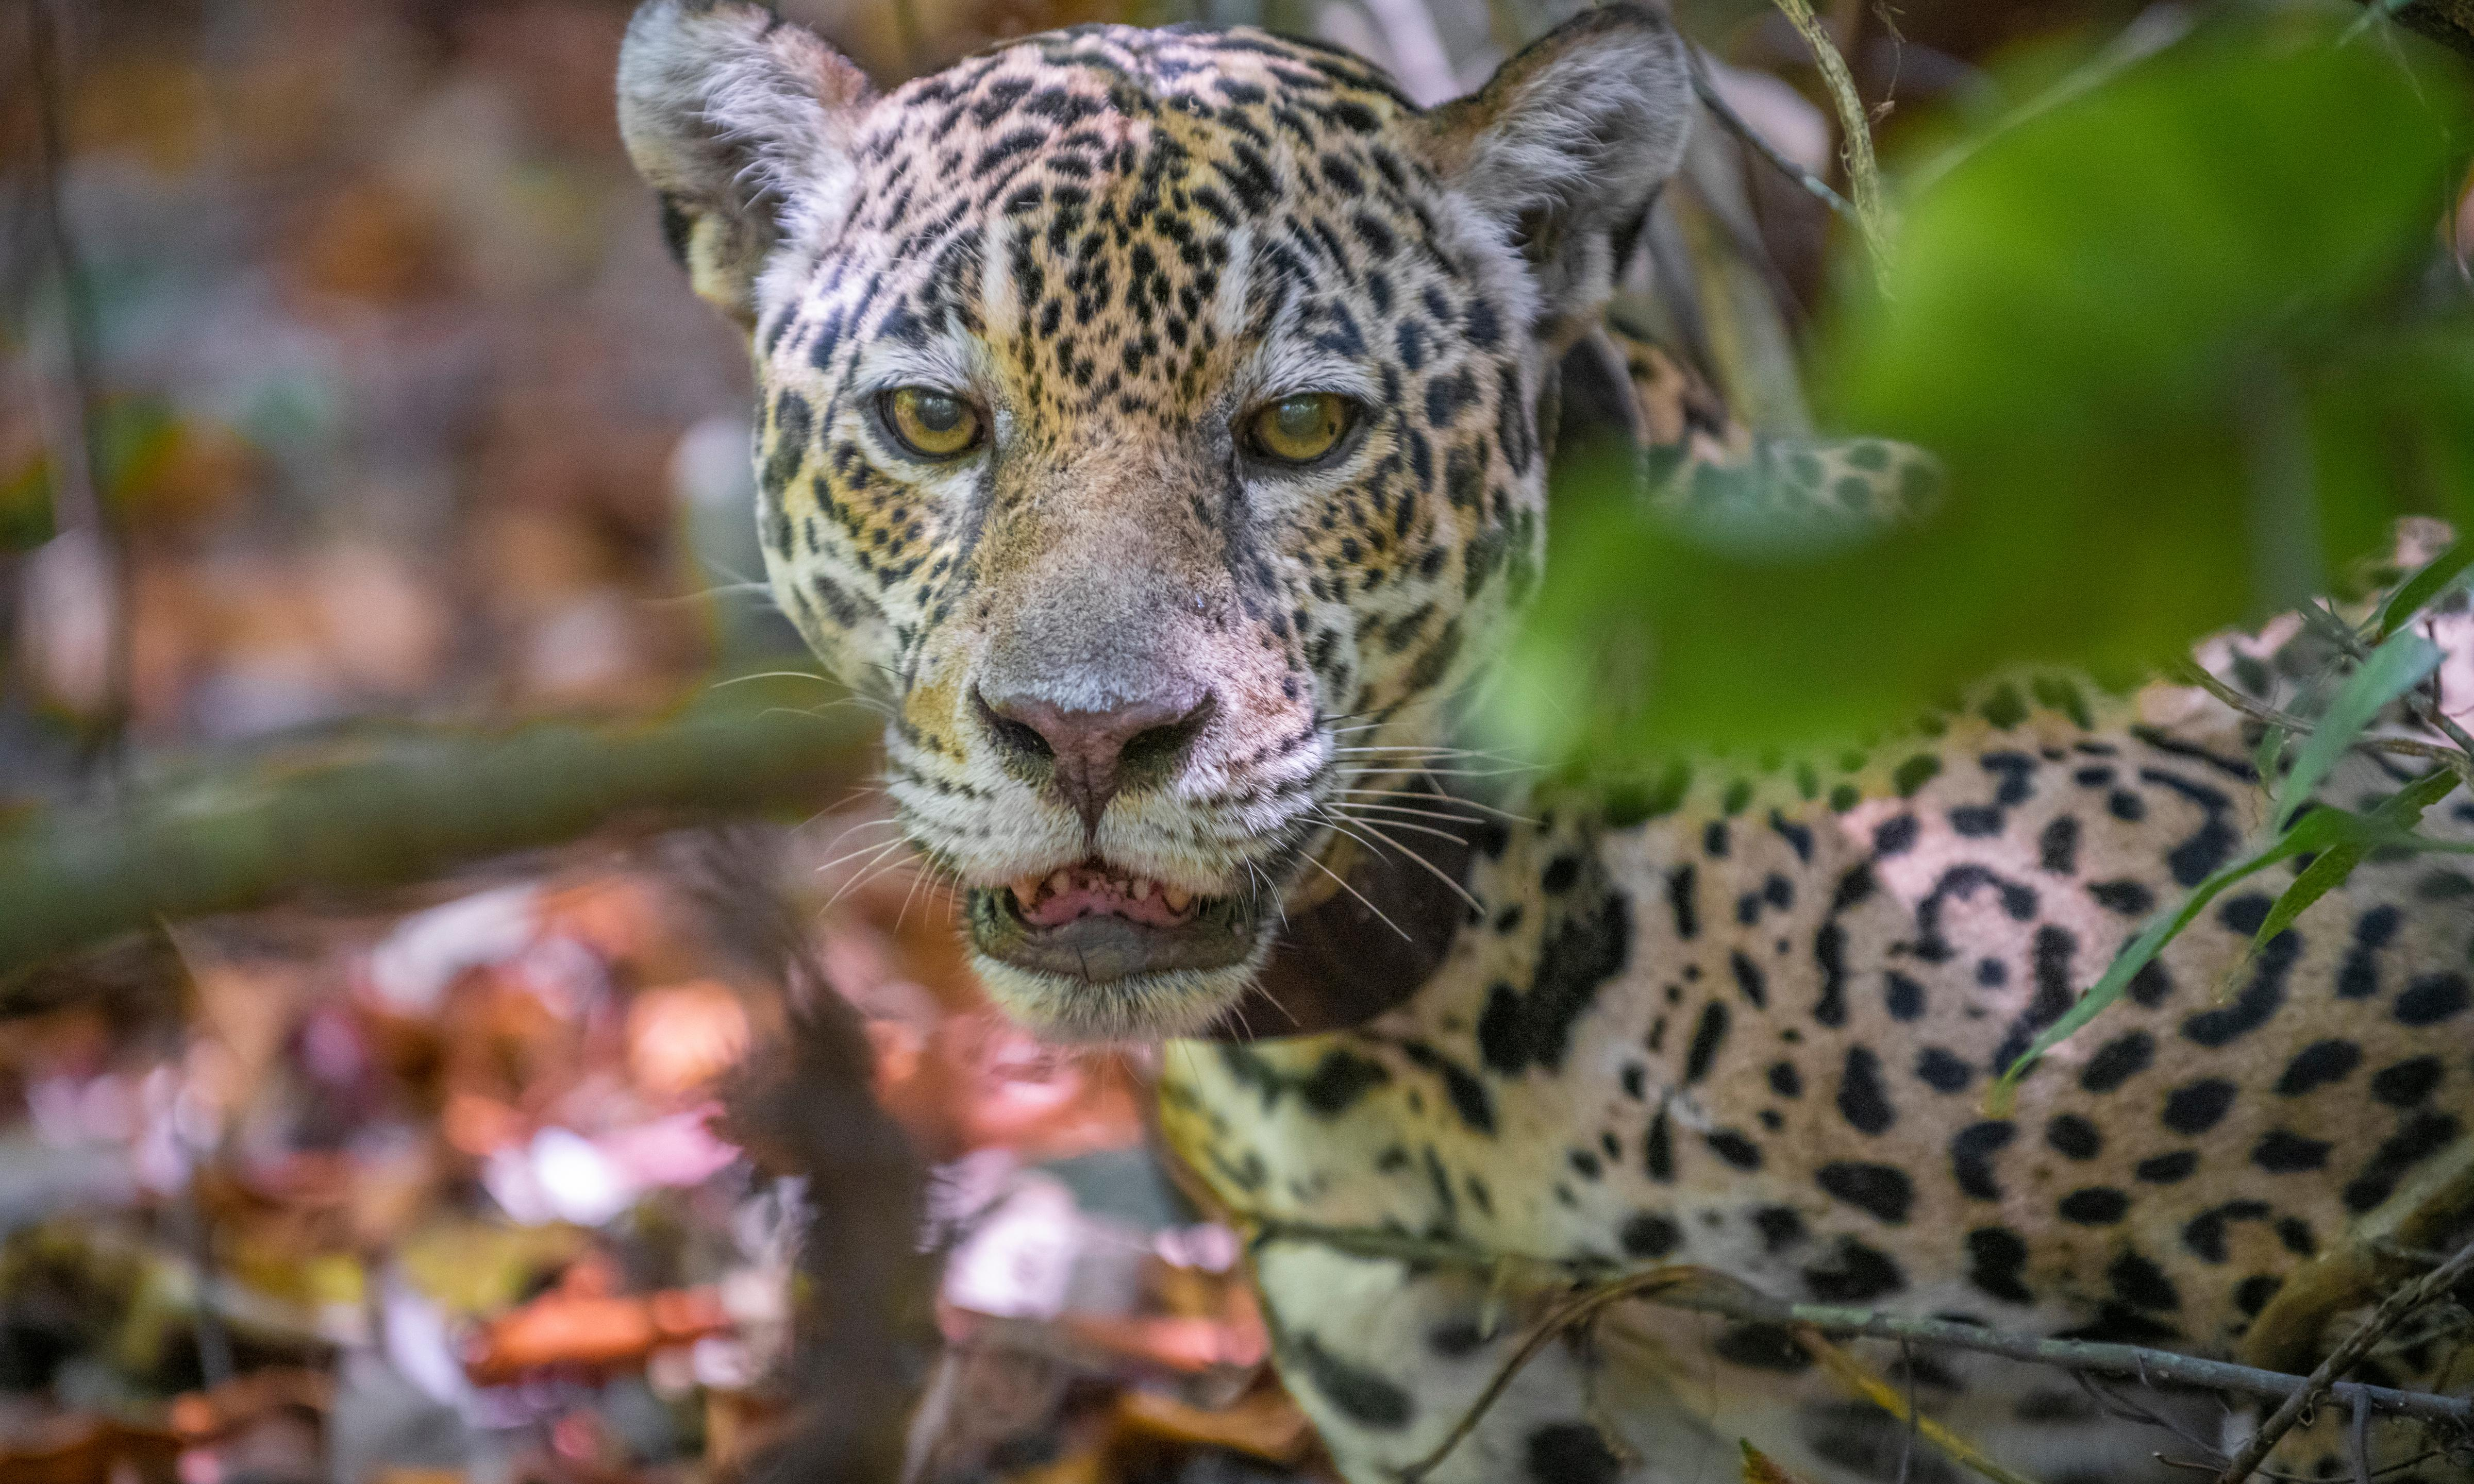 The jaguars fishing in the sea to survive